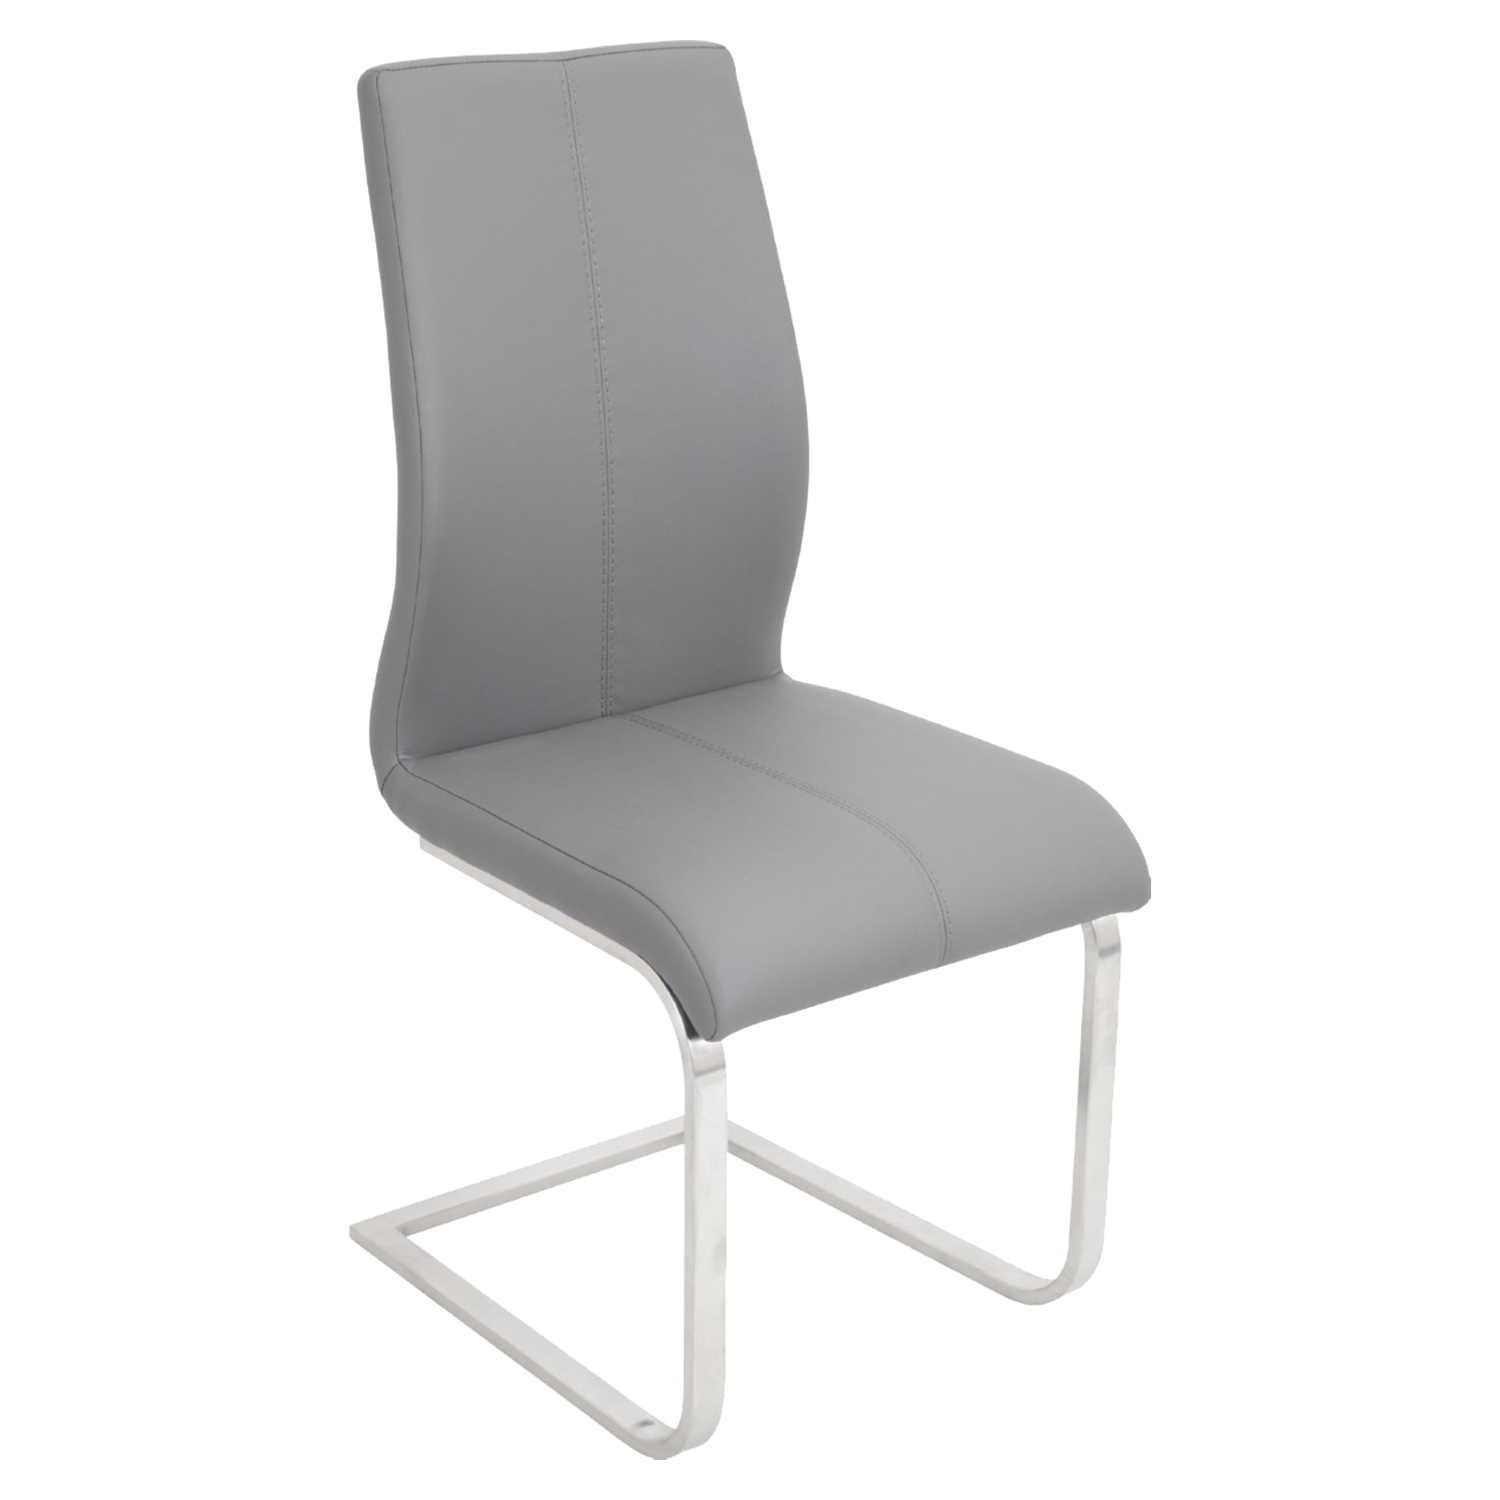 Dynasty Dining Chair - Gray (Set of 2)